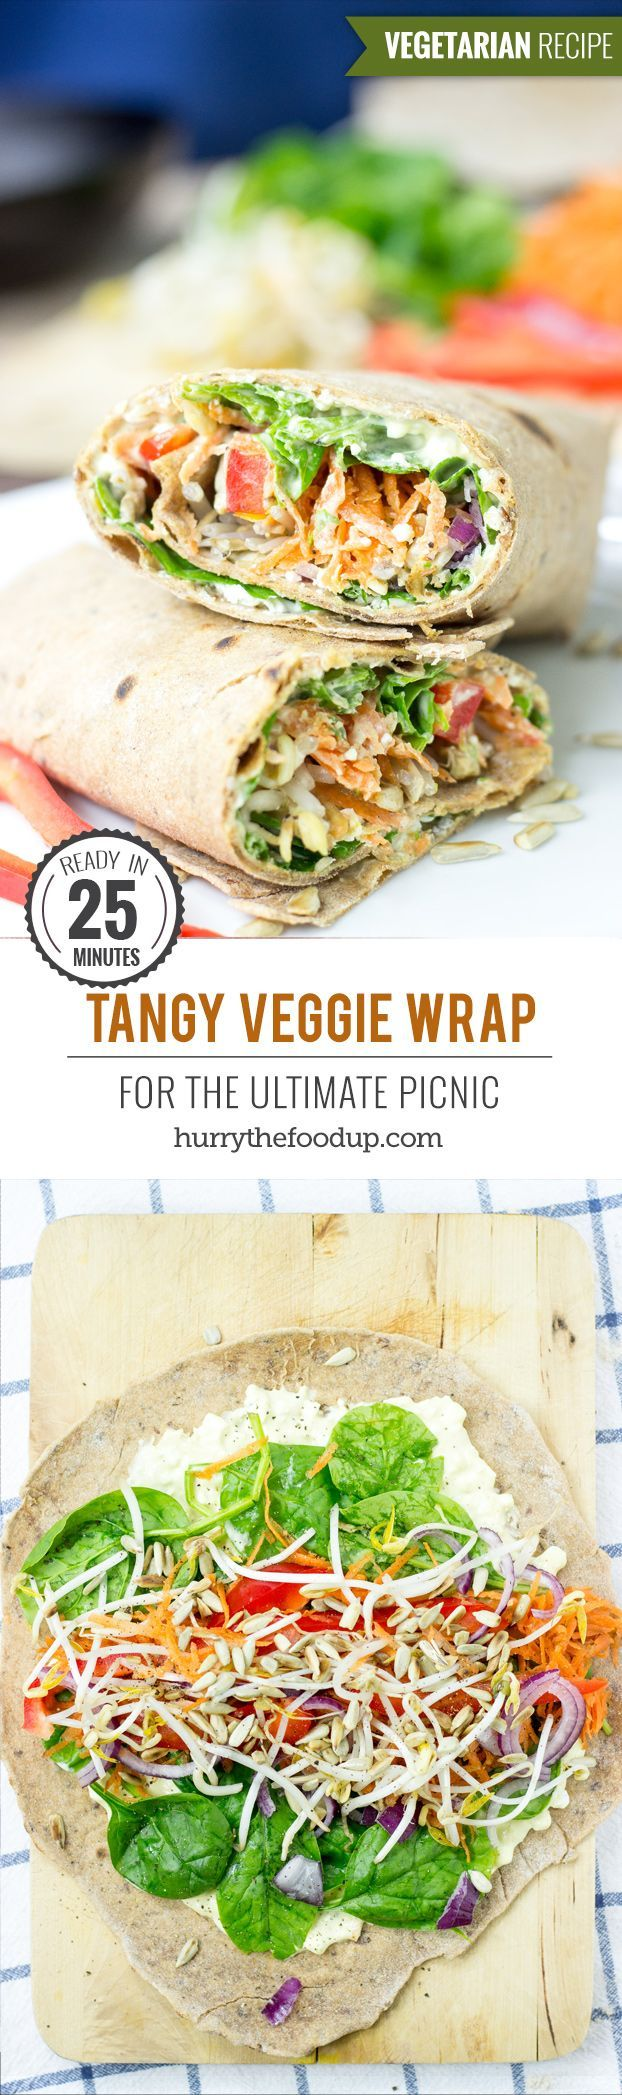 Tangy Veggie Wrap - For The Ultimate Picnic #vegetarian # wrap